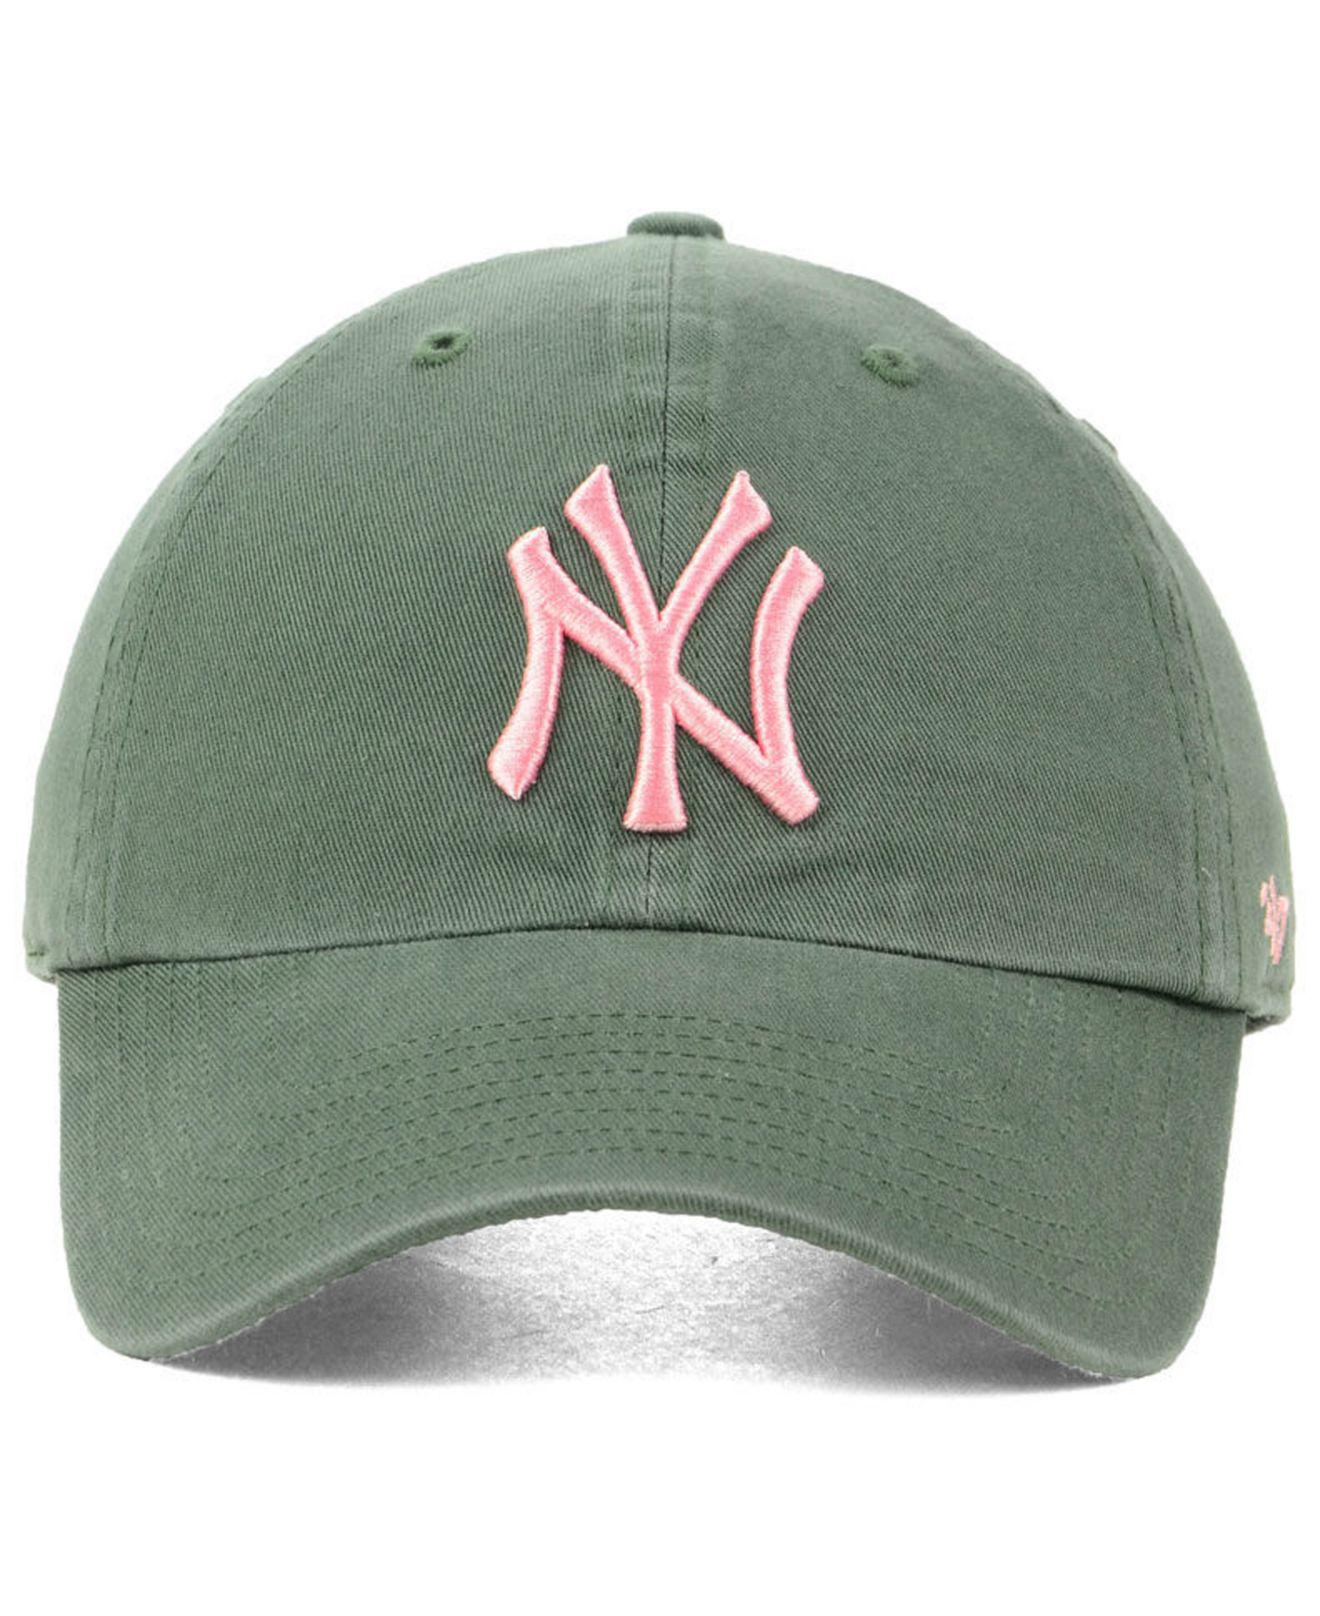 9bf0daae711 Lyst - 47 Brand New York Yankees Moss Pink Clean Up Cap in Green